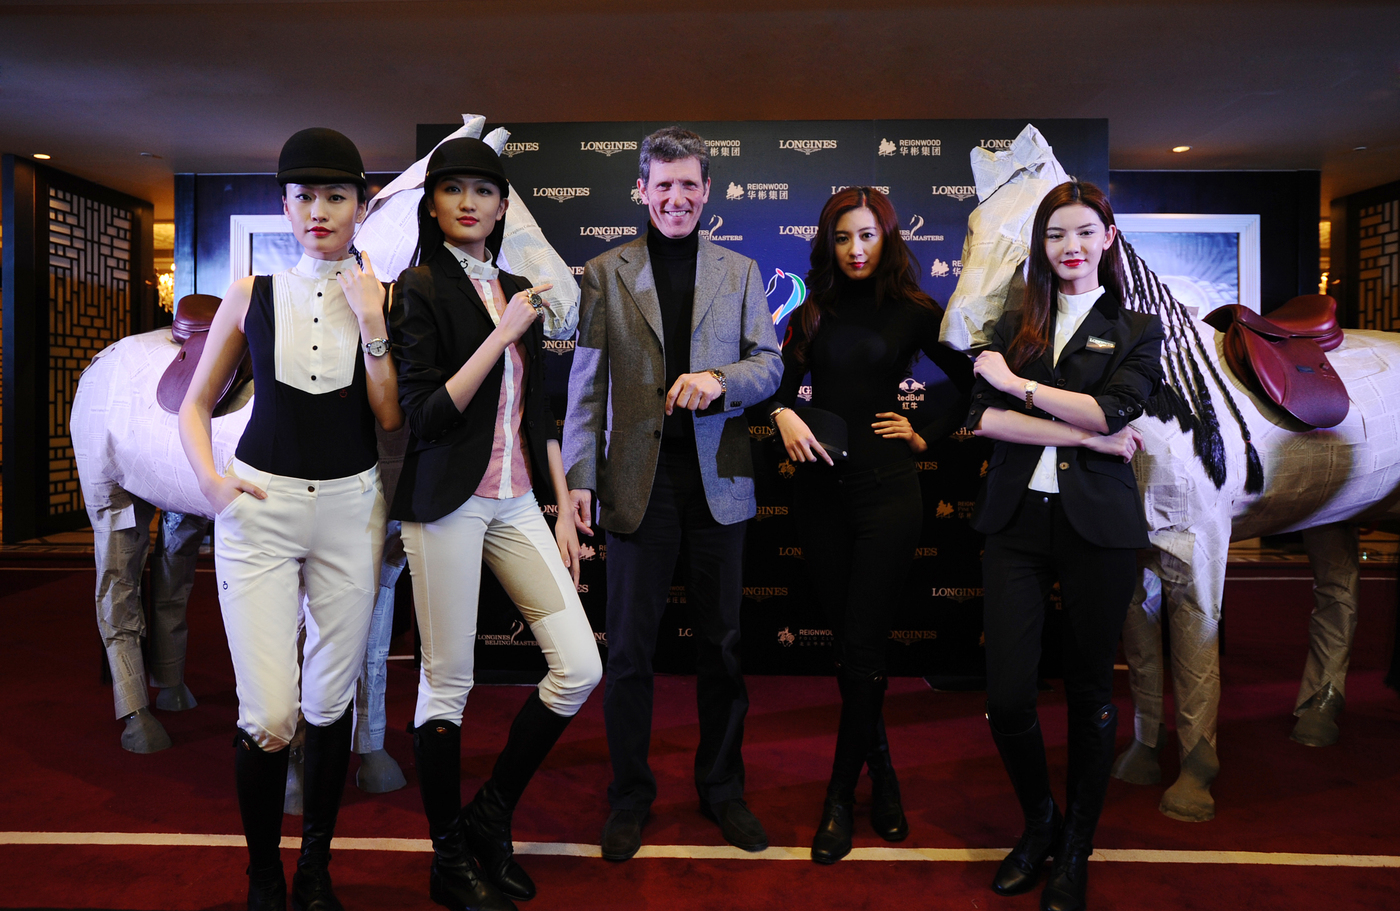 Longines Flat Racing Event: World's Best Riders to Assemble for Asia's Top Equestrian Competition at the Bird's Nest 3